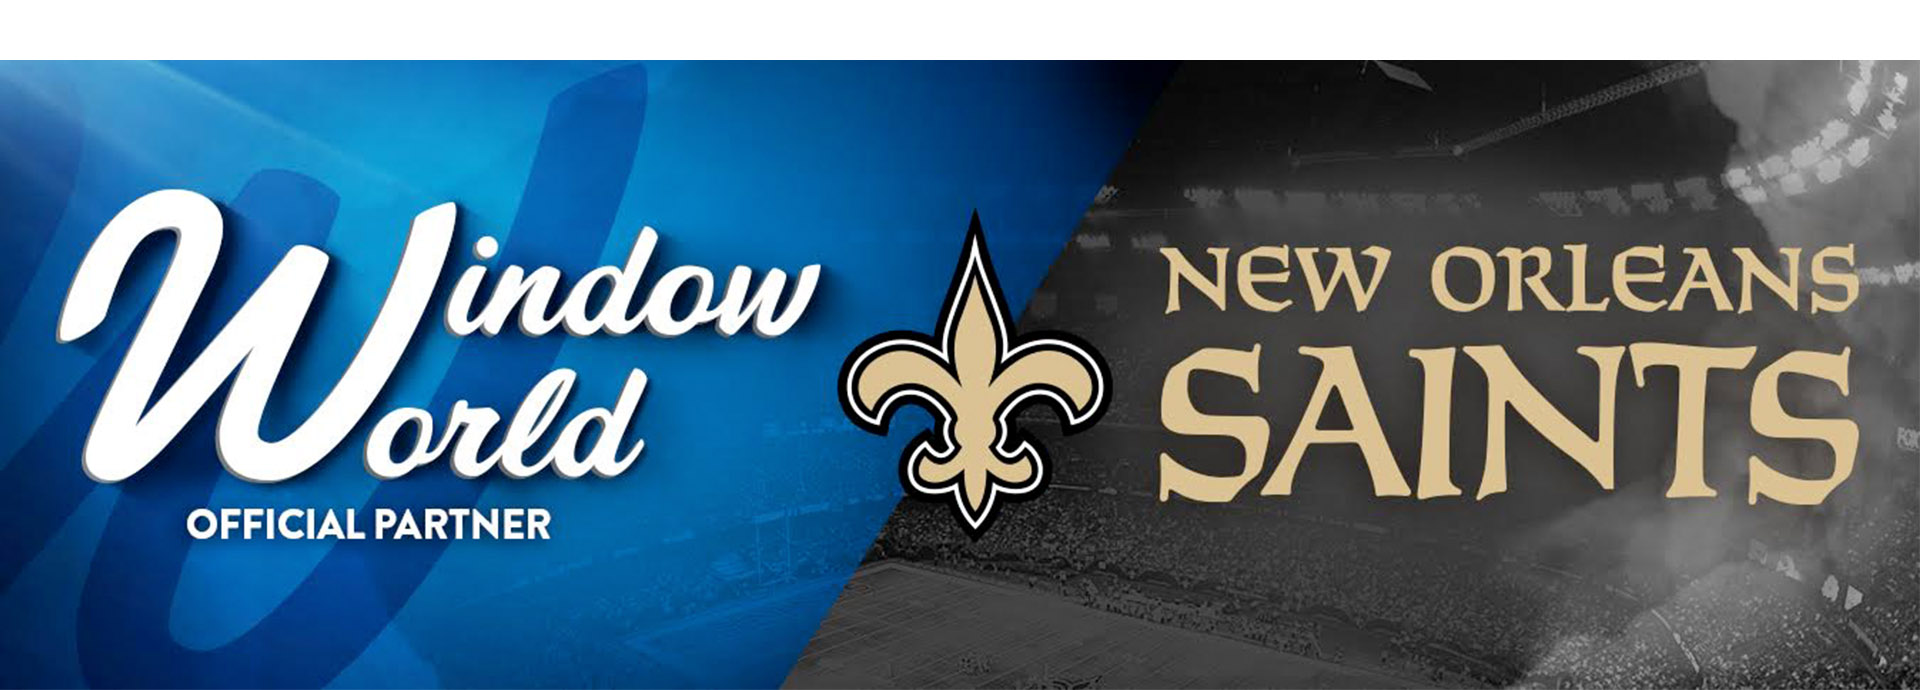 window world and new orleans saints